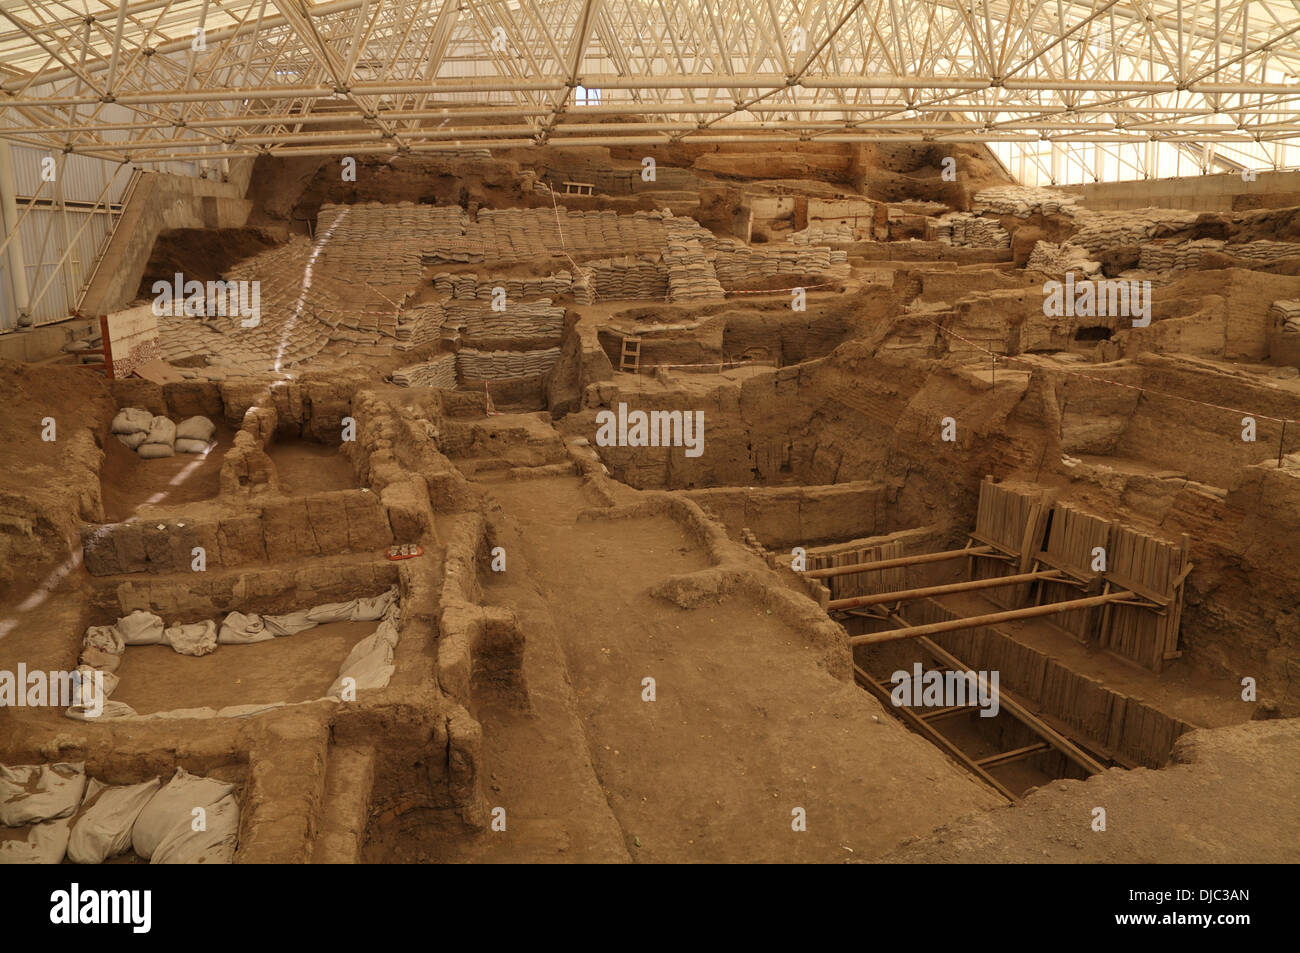 Catalhoyuk dating from 9,500 years, Cumra, Konya, central Turkey Stock Photo